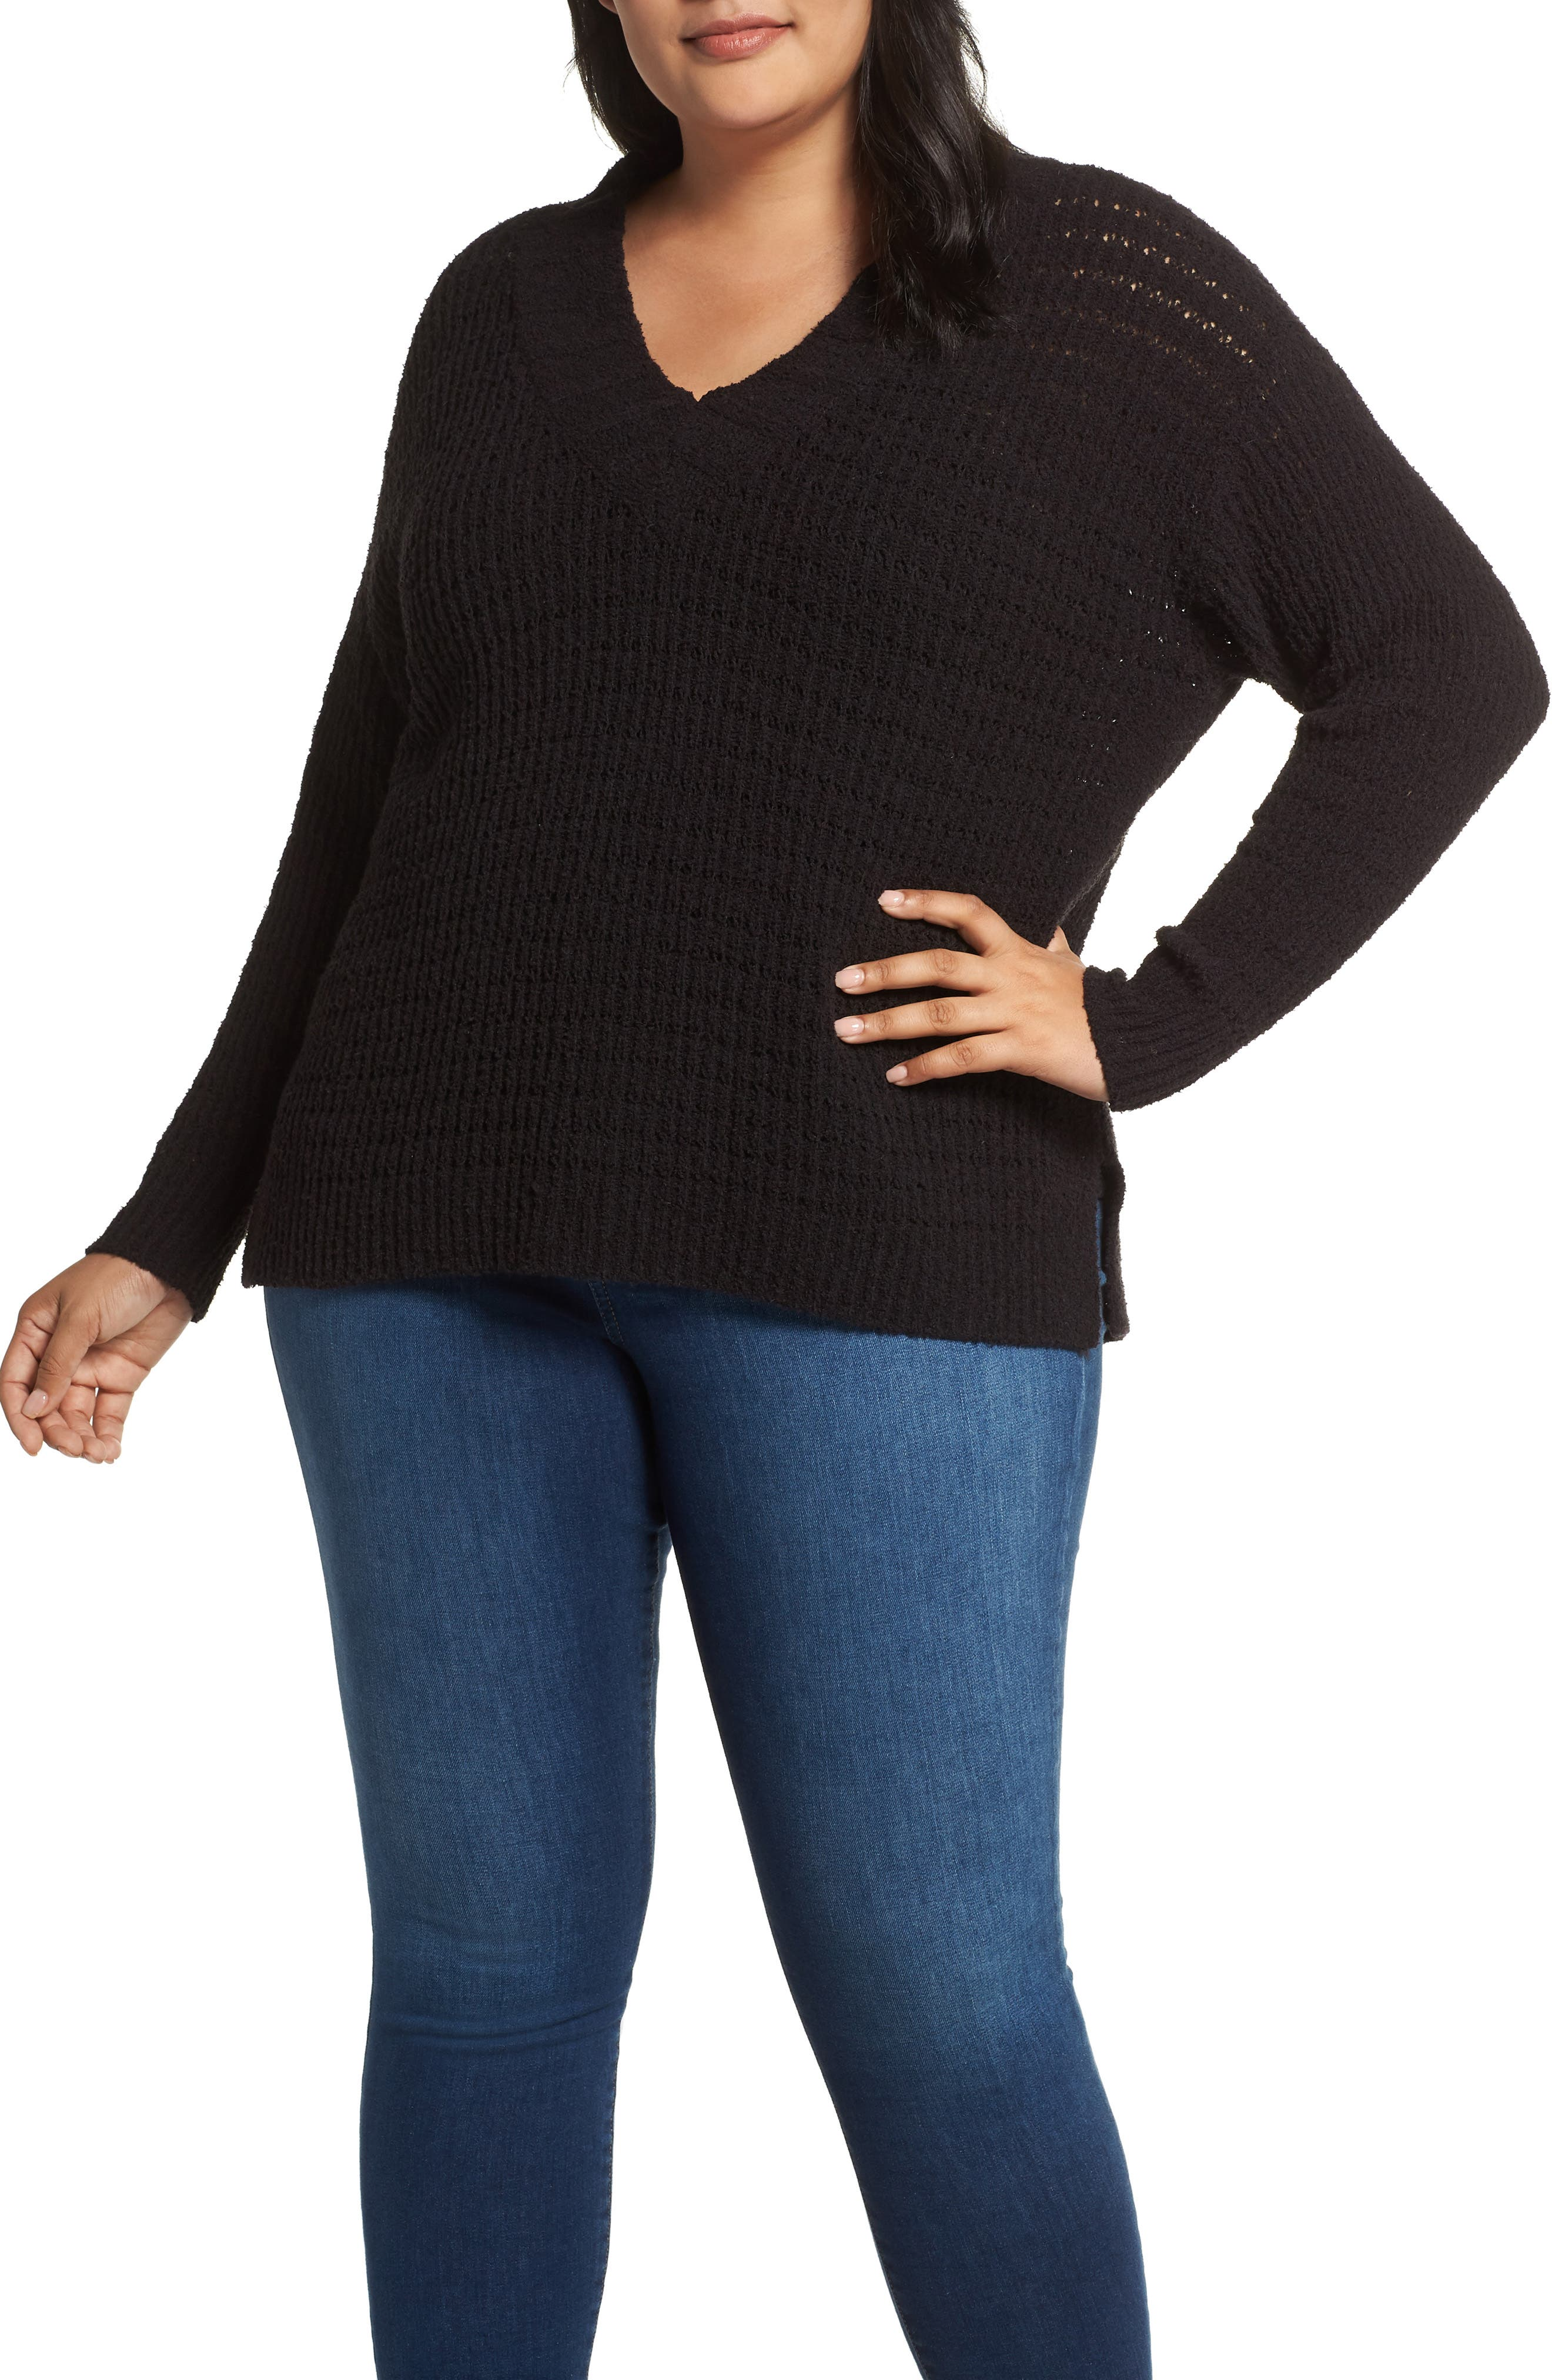 CASLON<SUP>®</SUP>, Tuck Stitch Sweater, Main thumbnail 1, color, BLACK